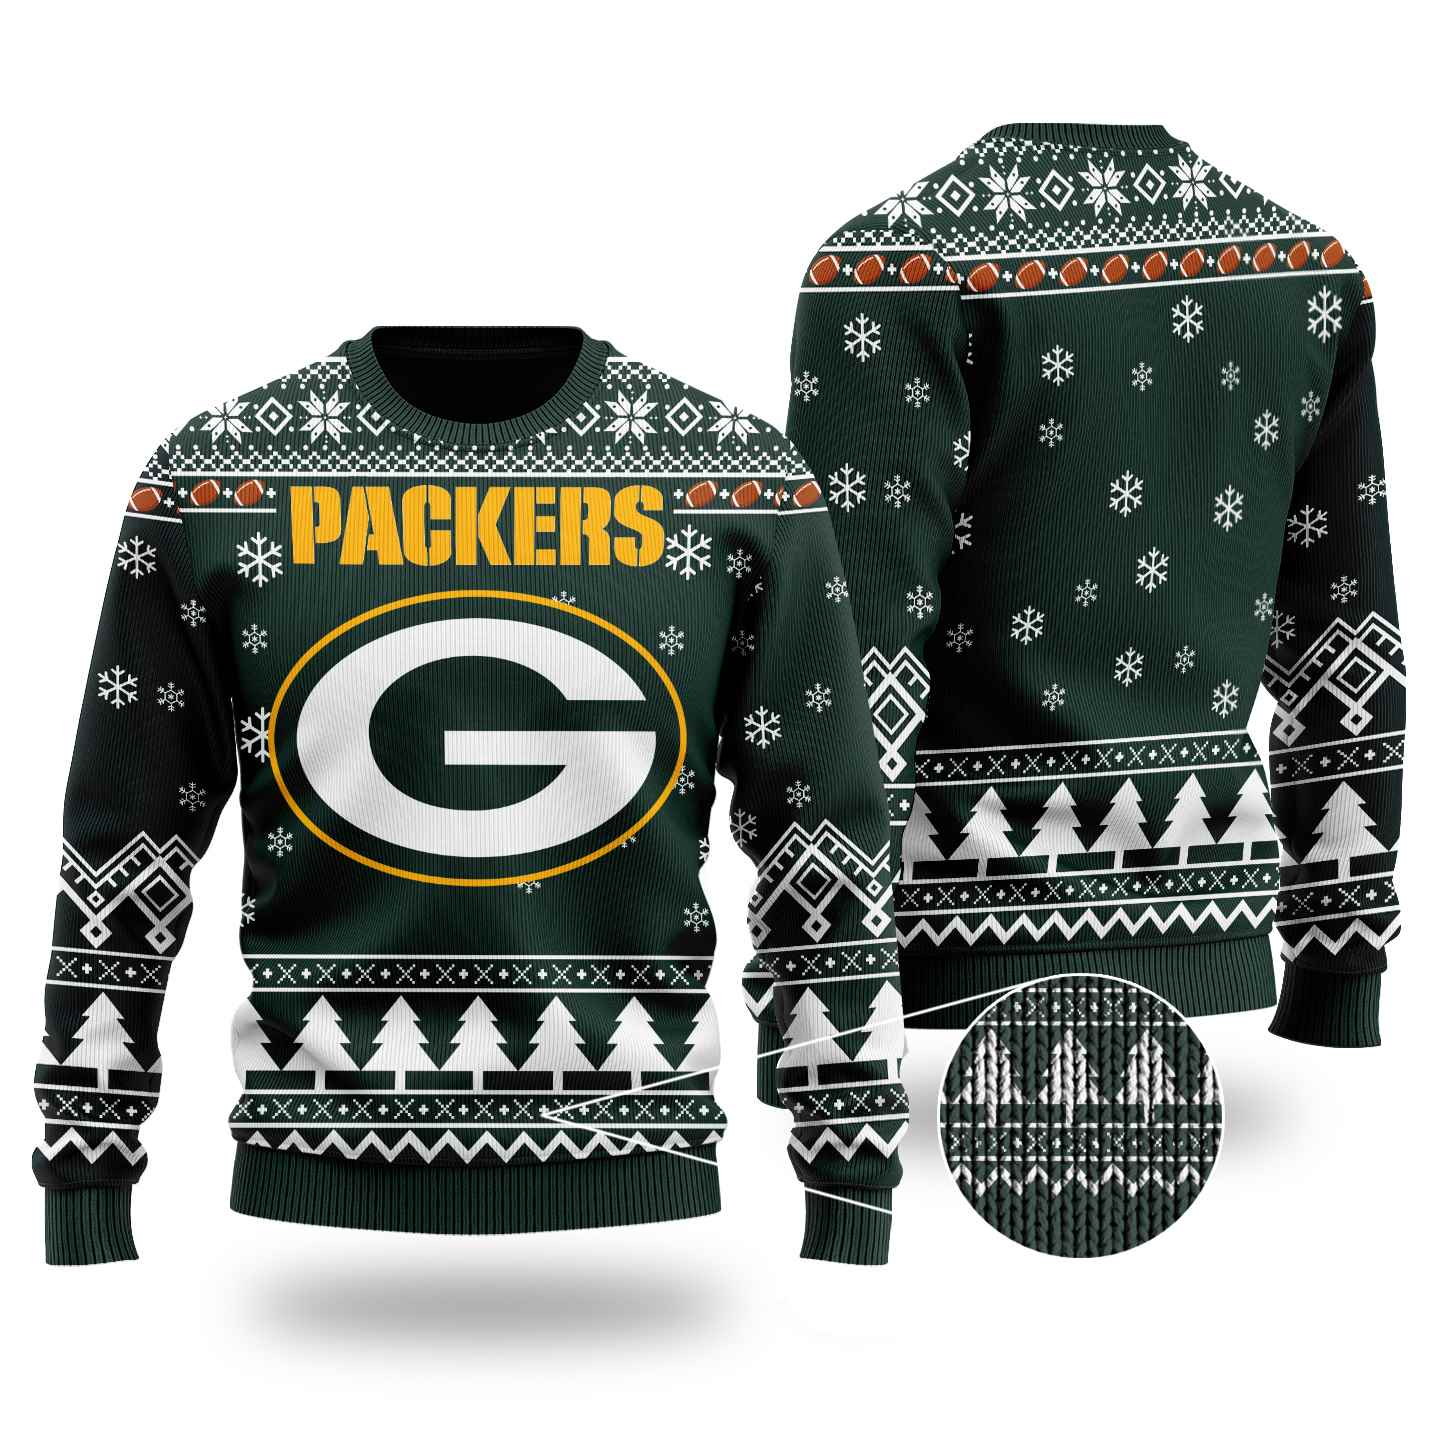 Nfl Green Bay Packers Chibi Ugly Christmas Sweater Wool Material